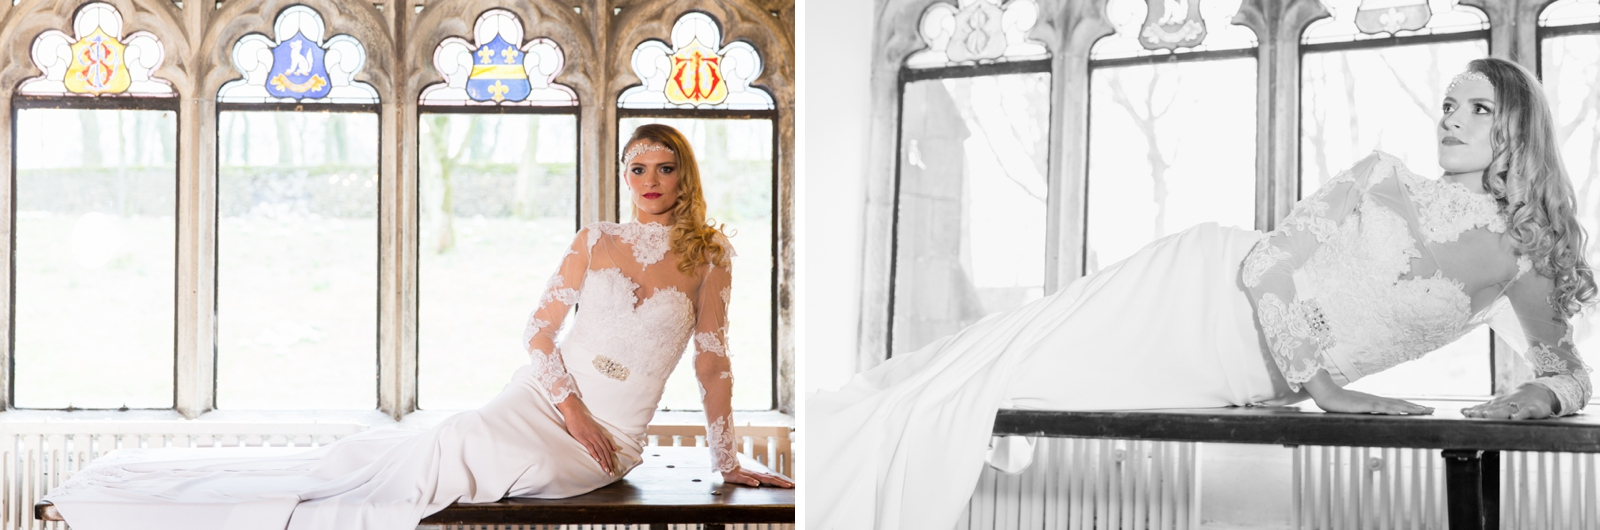 Bridal portrait photography at a Hargate Hall wedding